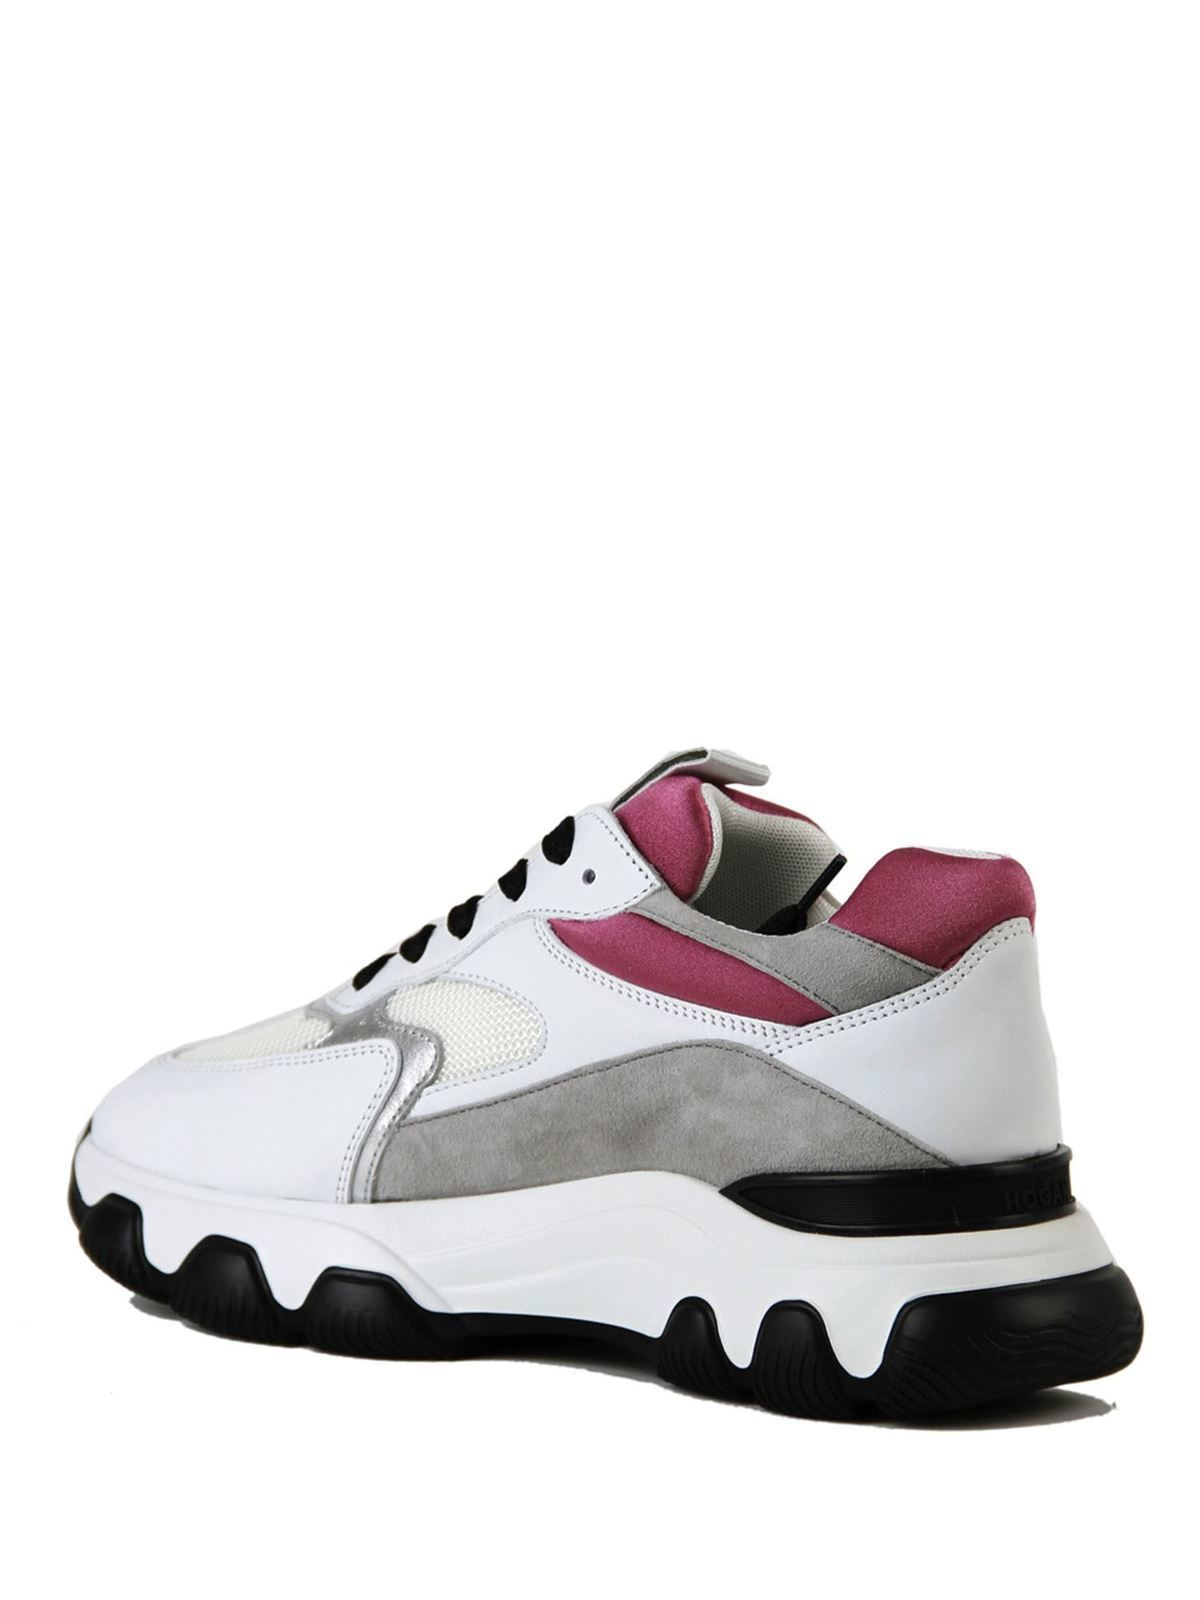 Sneakers Hyperactive bianche rosa e argento